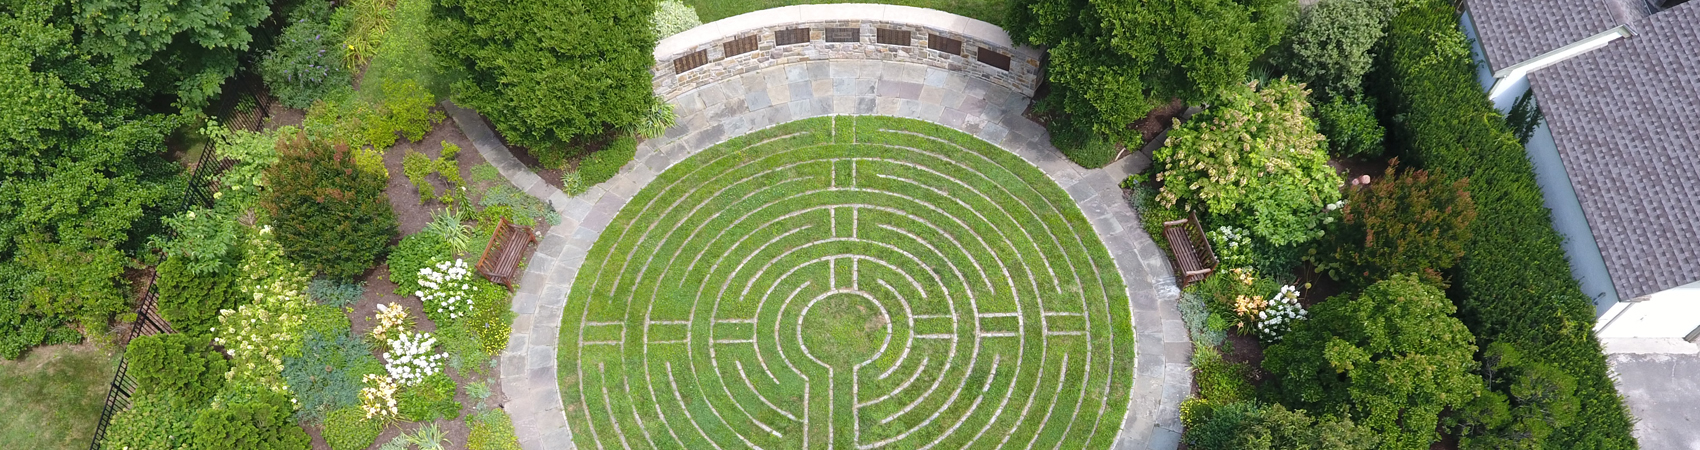 Walking the Labyrinth – Swarthmore Presbyterian Church on front garden designs, garden maze designs, amazing garden designs, partial shade garden designs, drought tolerant garden designs, simple garden designs, meditation garden designs, new mexico garden designs, home garden designs, no maintenance garden designs, witch garden designs, english rose garden designs, white flower garden designs, minecraft garden designs, annual flower garden designs, sun garden designs, unique garden designs, terrace garden designs, school garden designs, cottage flower garden designs,